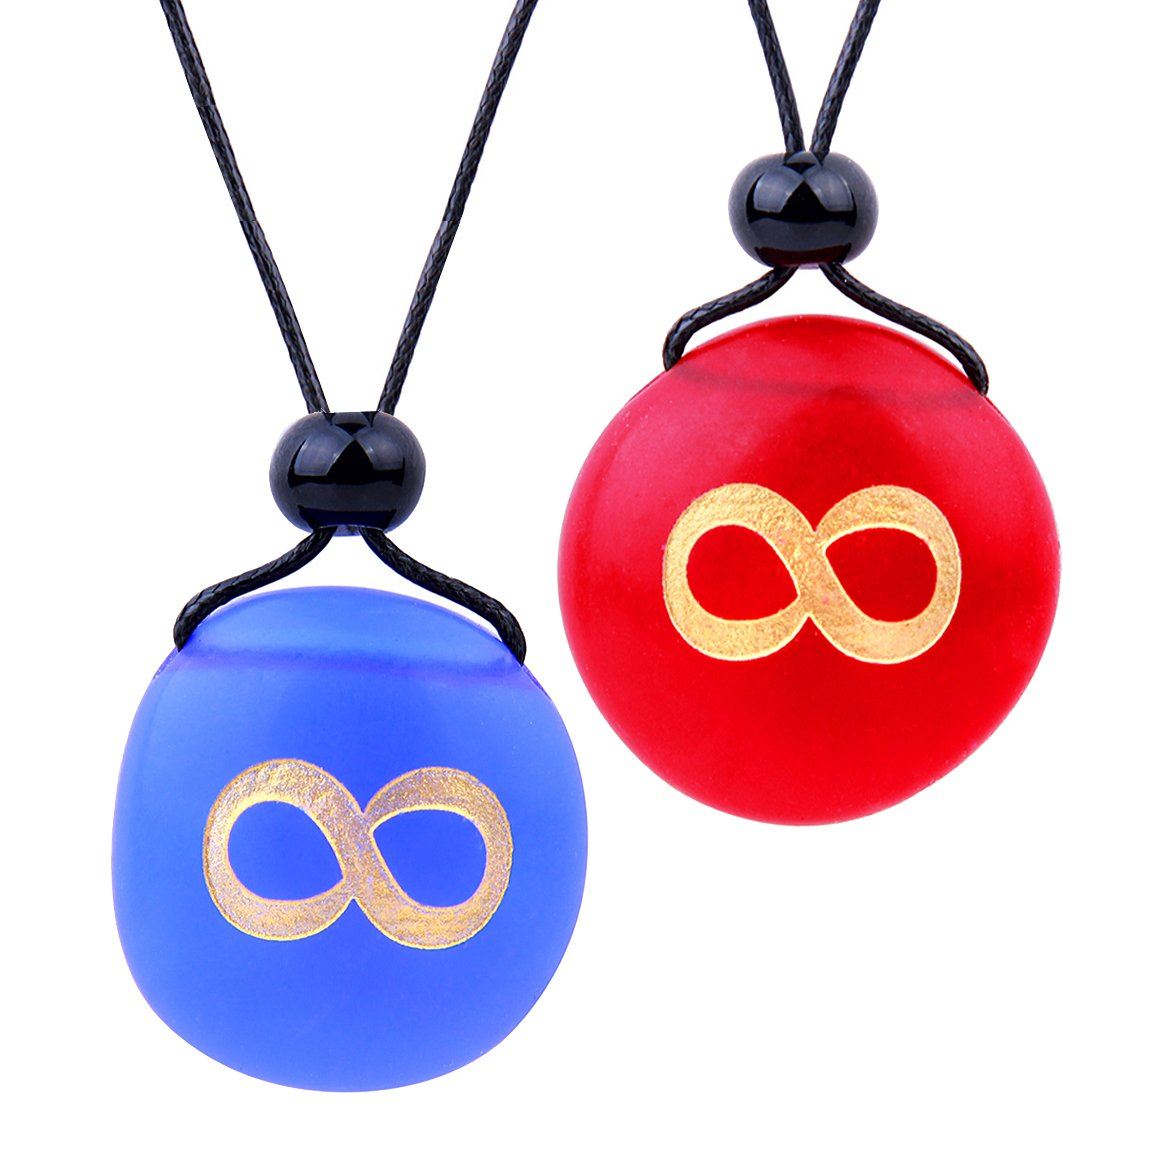 Frosted Sea Glass Stones Infinity Eternity Energy Love Couples BFF Set Amulets Royal Blue Red Necklaces